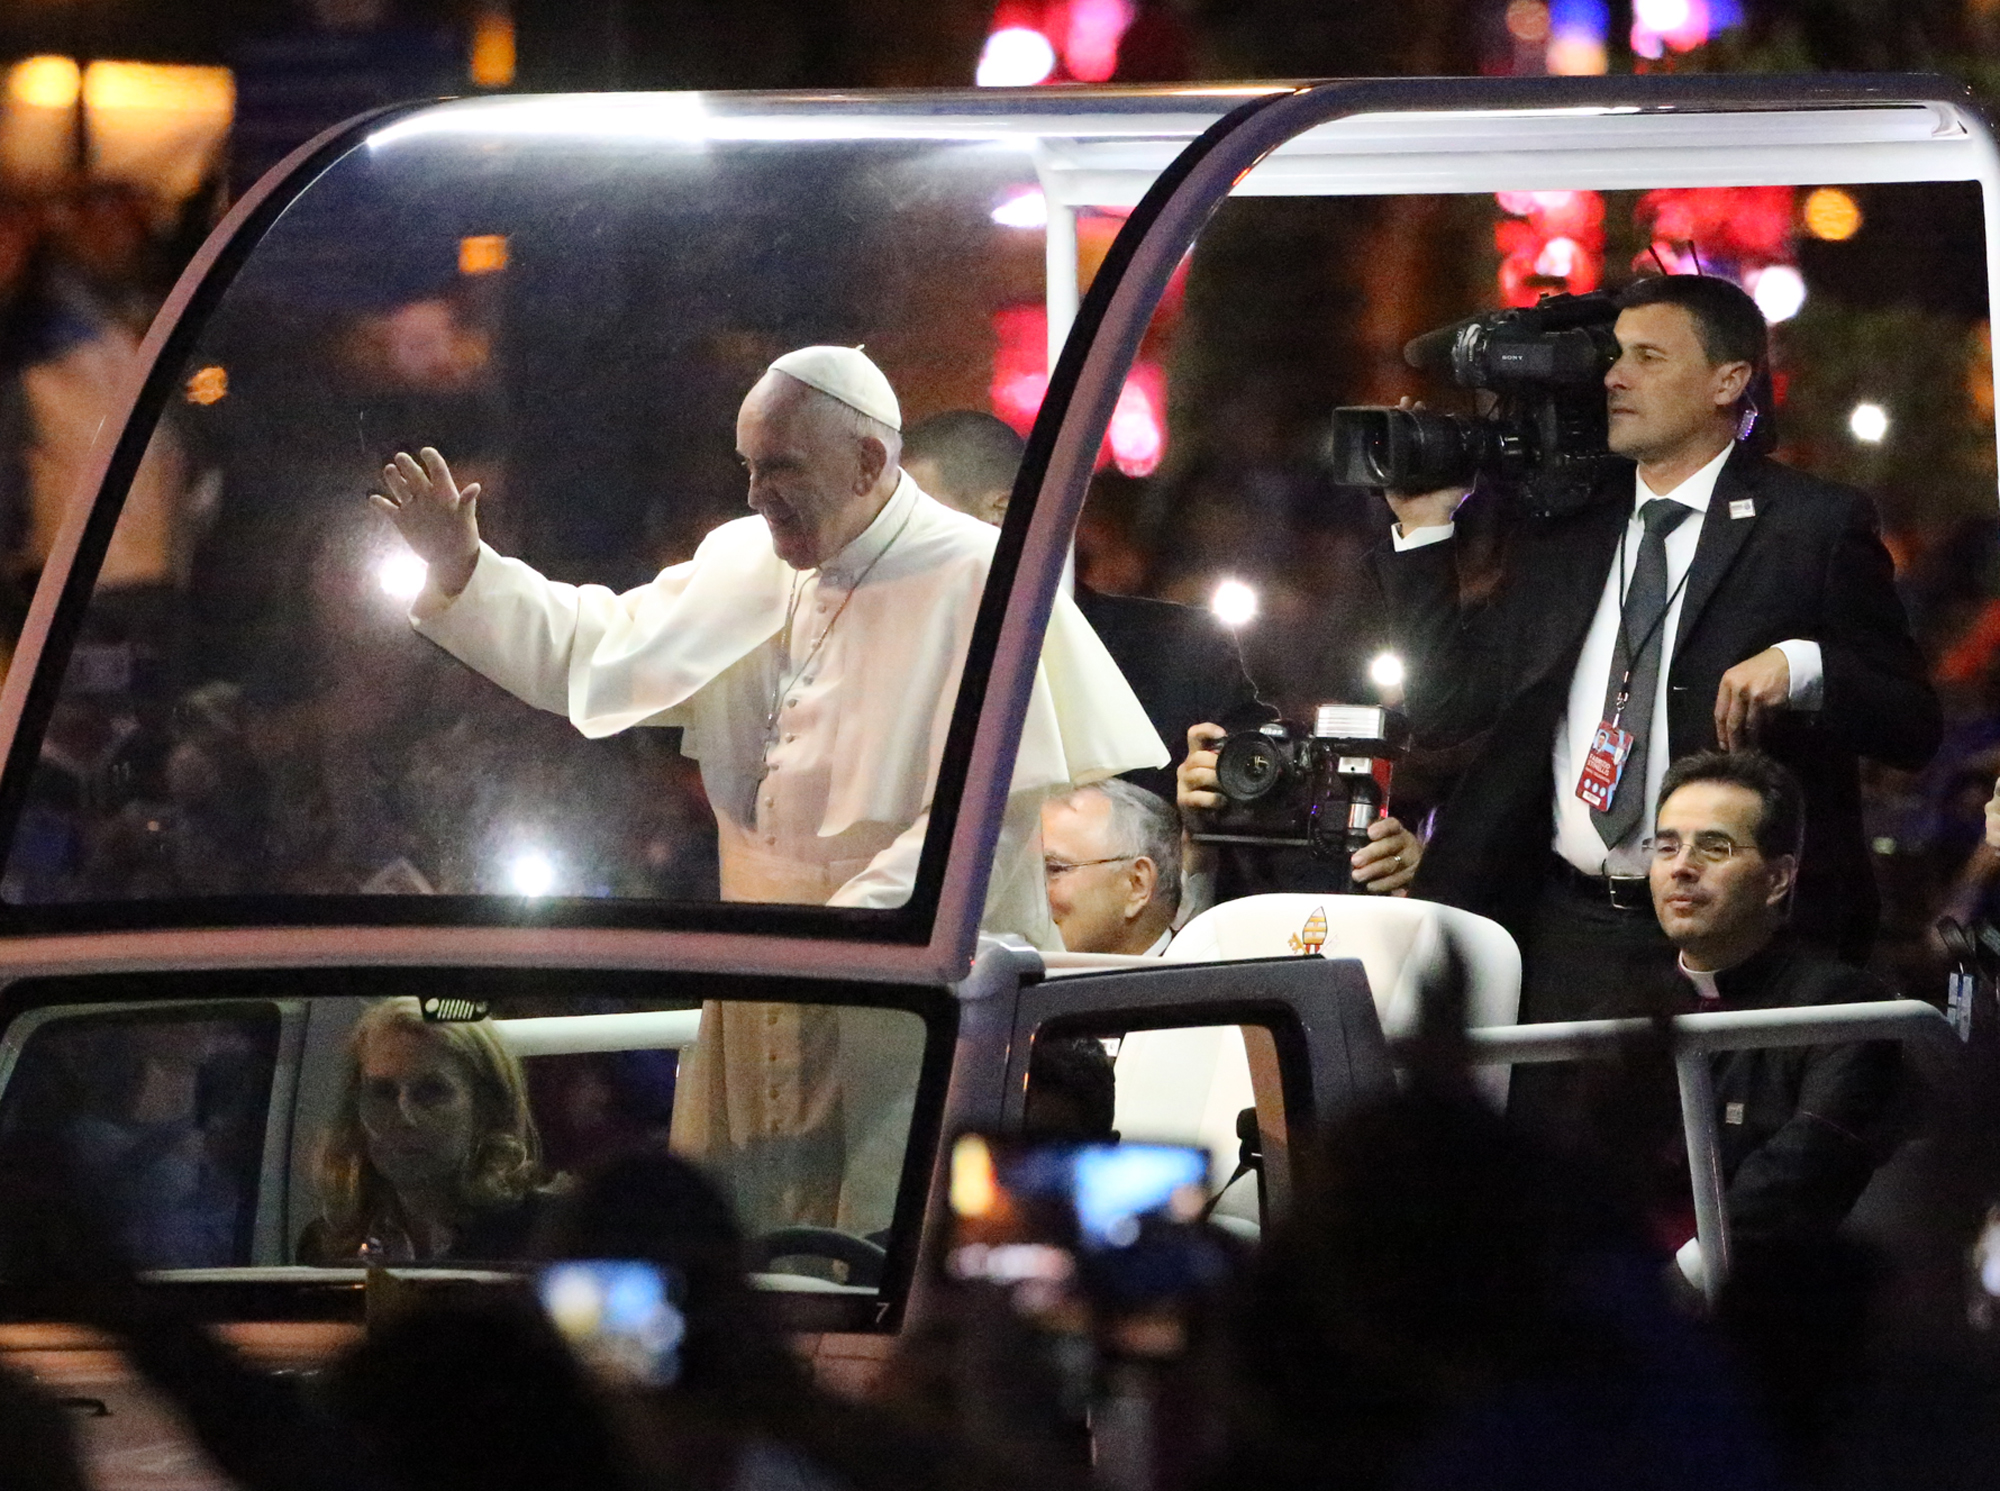 Pope Francis waves to throngs of people lining the roadway during he visit to Philadelphia, PA Sept. 19, 2015